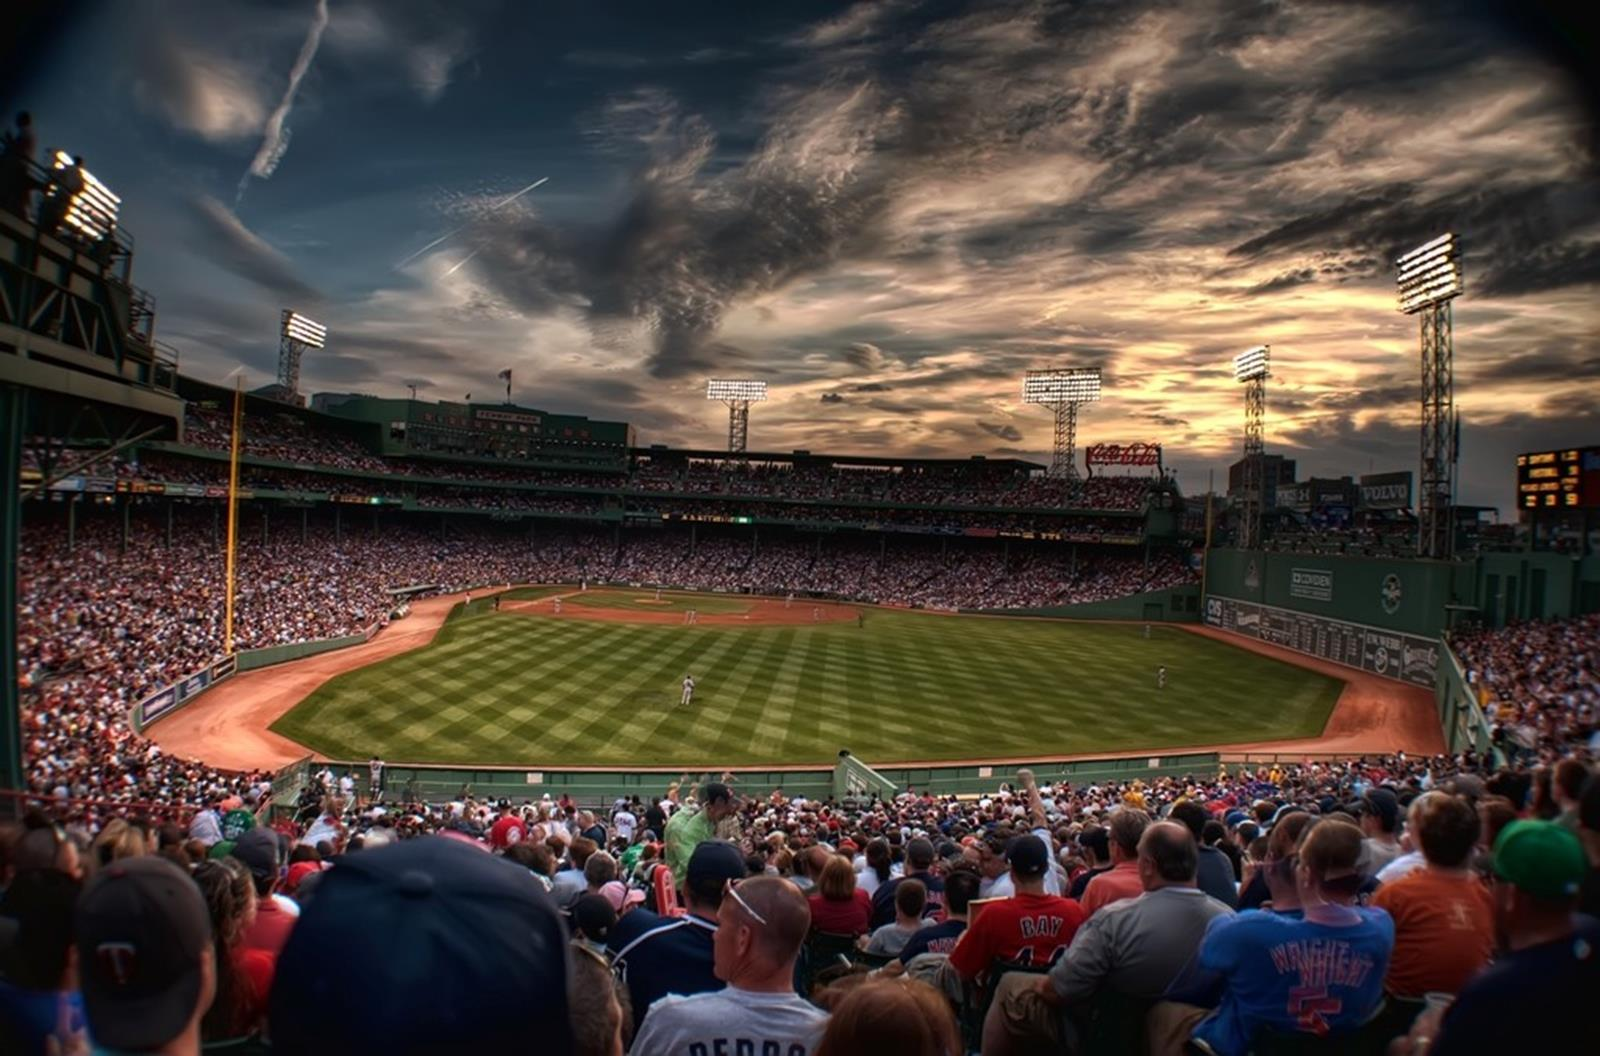 Fenway Stadium. Credit: Flikr at en.wikipedia